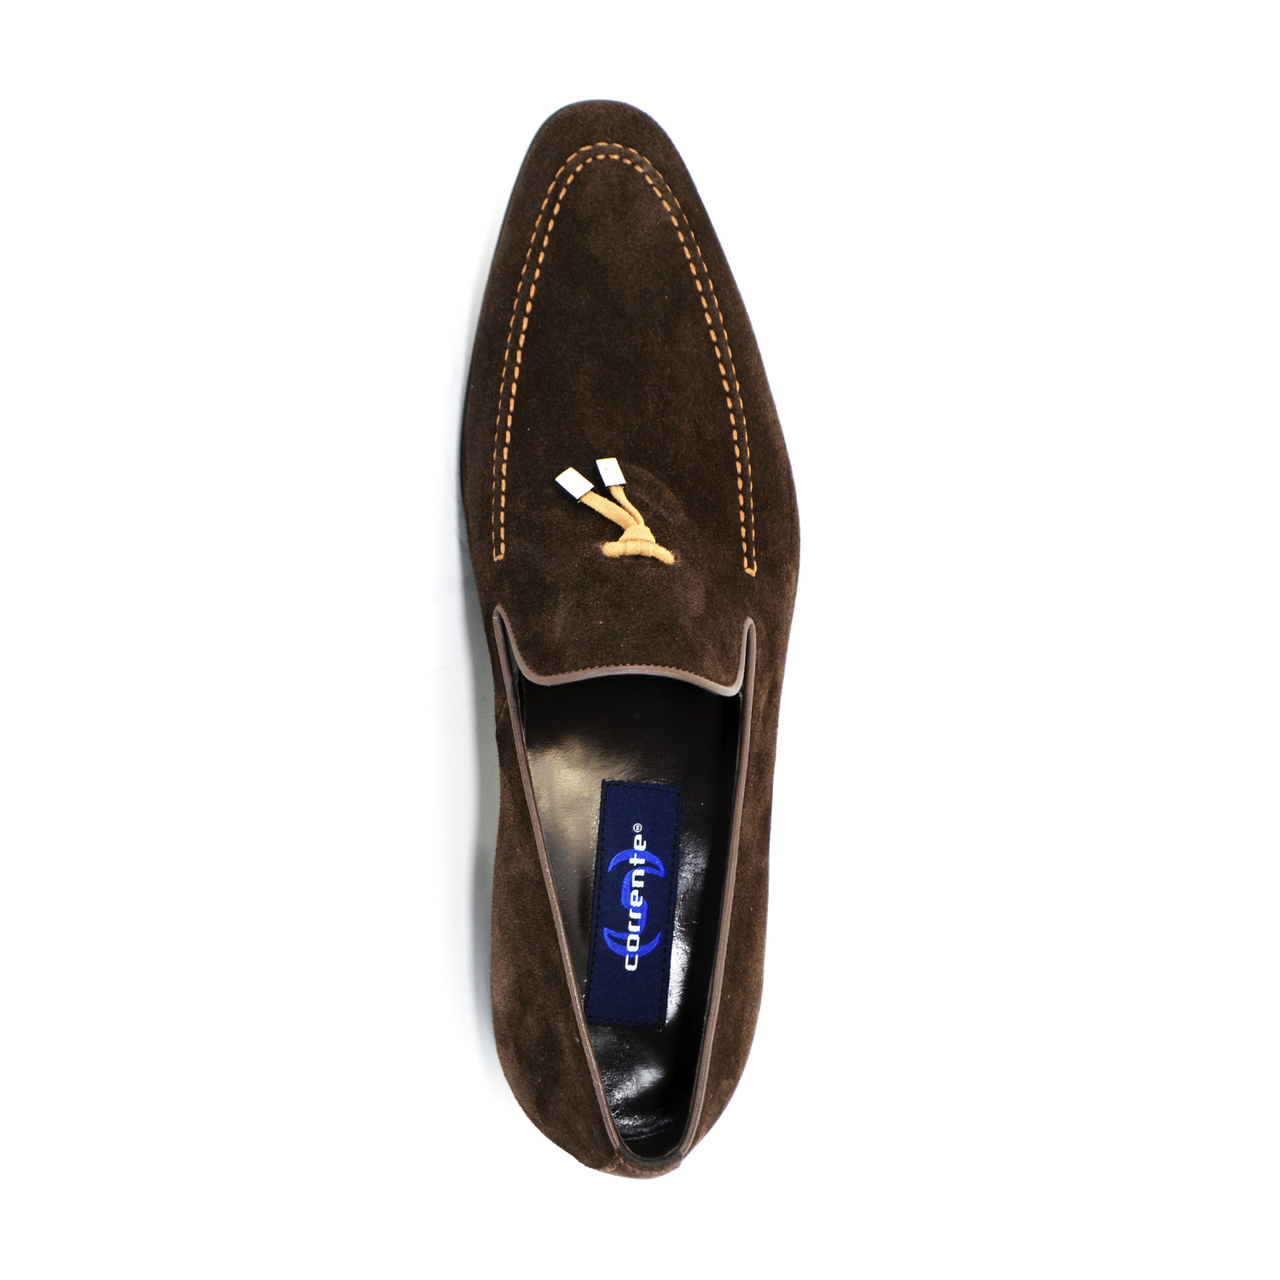 Corrente 5060 Suede Loafer with whit contrast strap- Brown